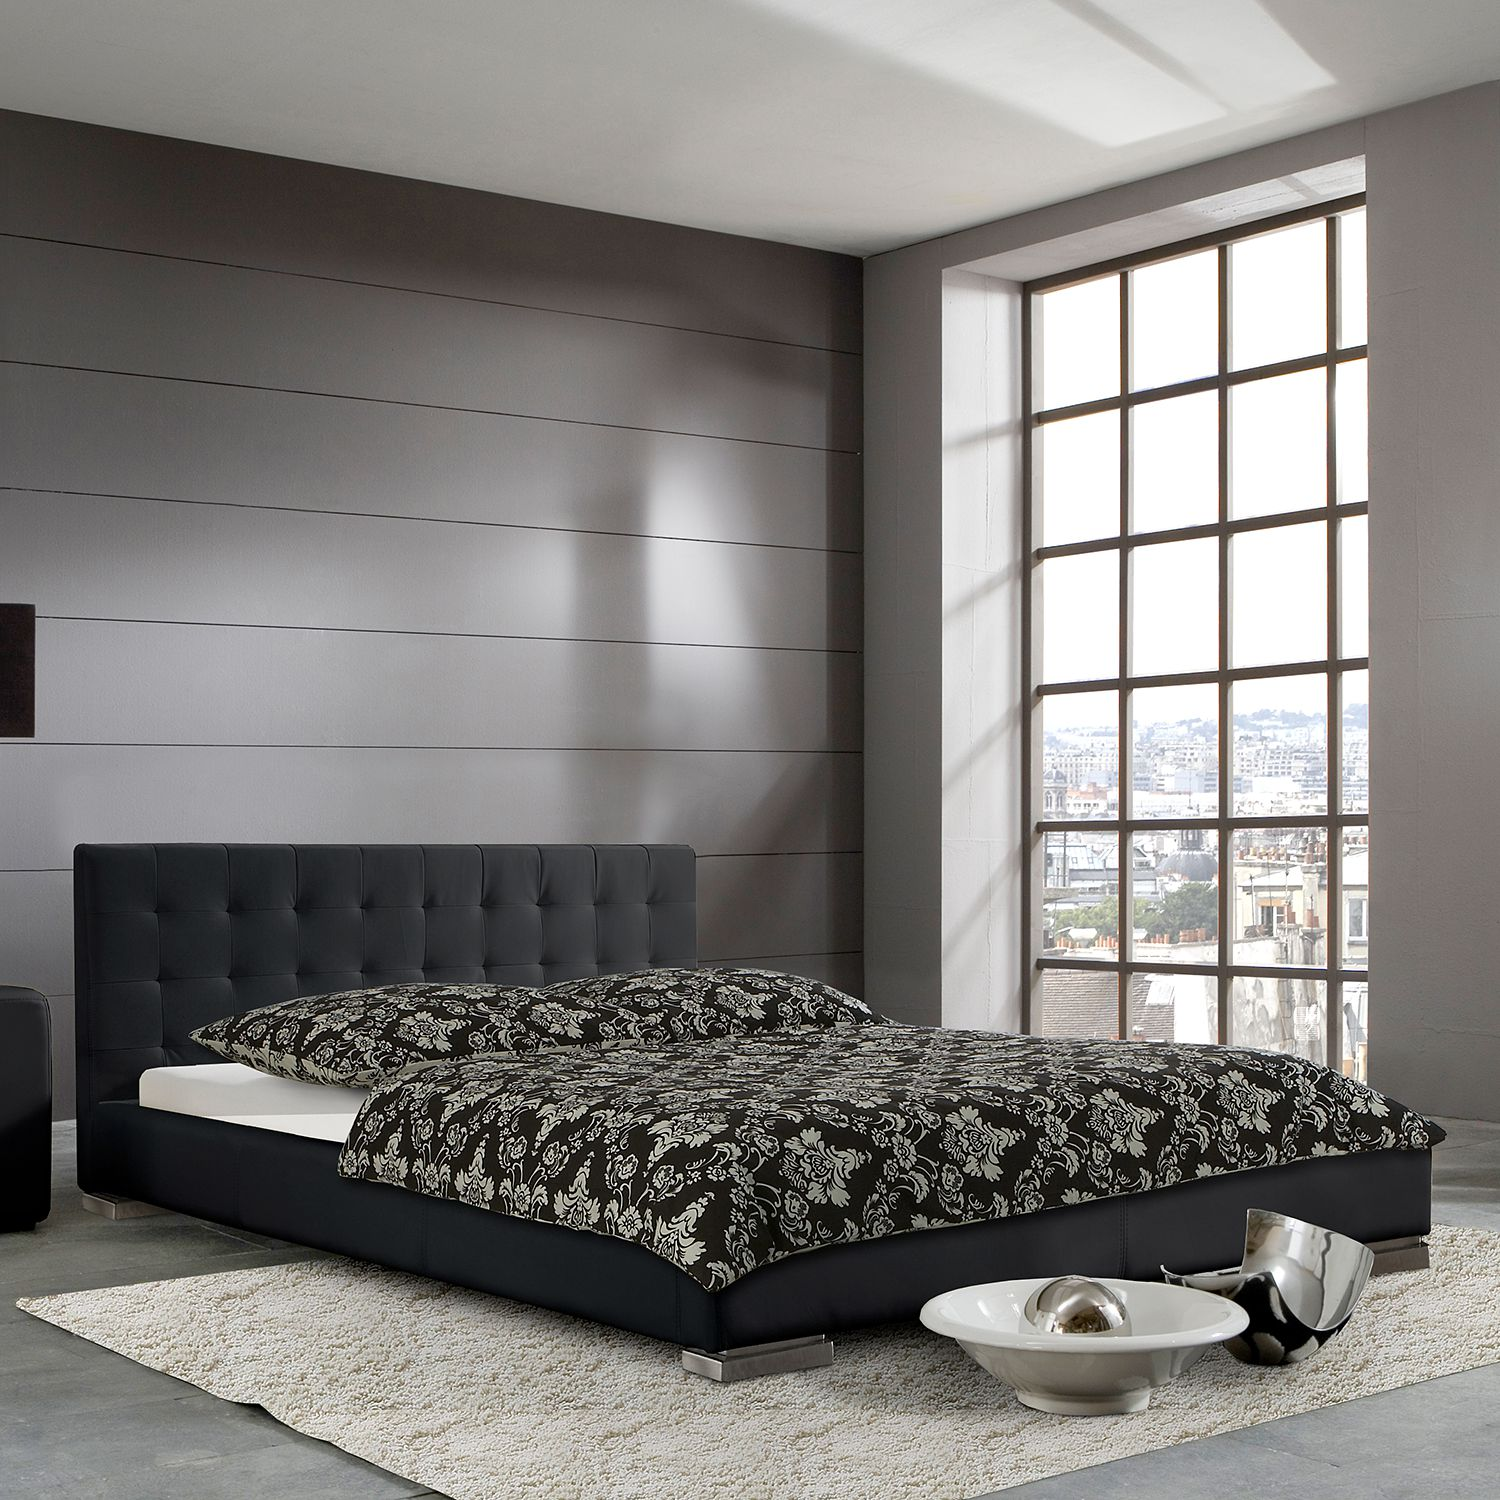 polsterbett sandra kunstleder 160 x 200cm schwarz. Black Bedroom Furniture Sets. Home Design Ideas